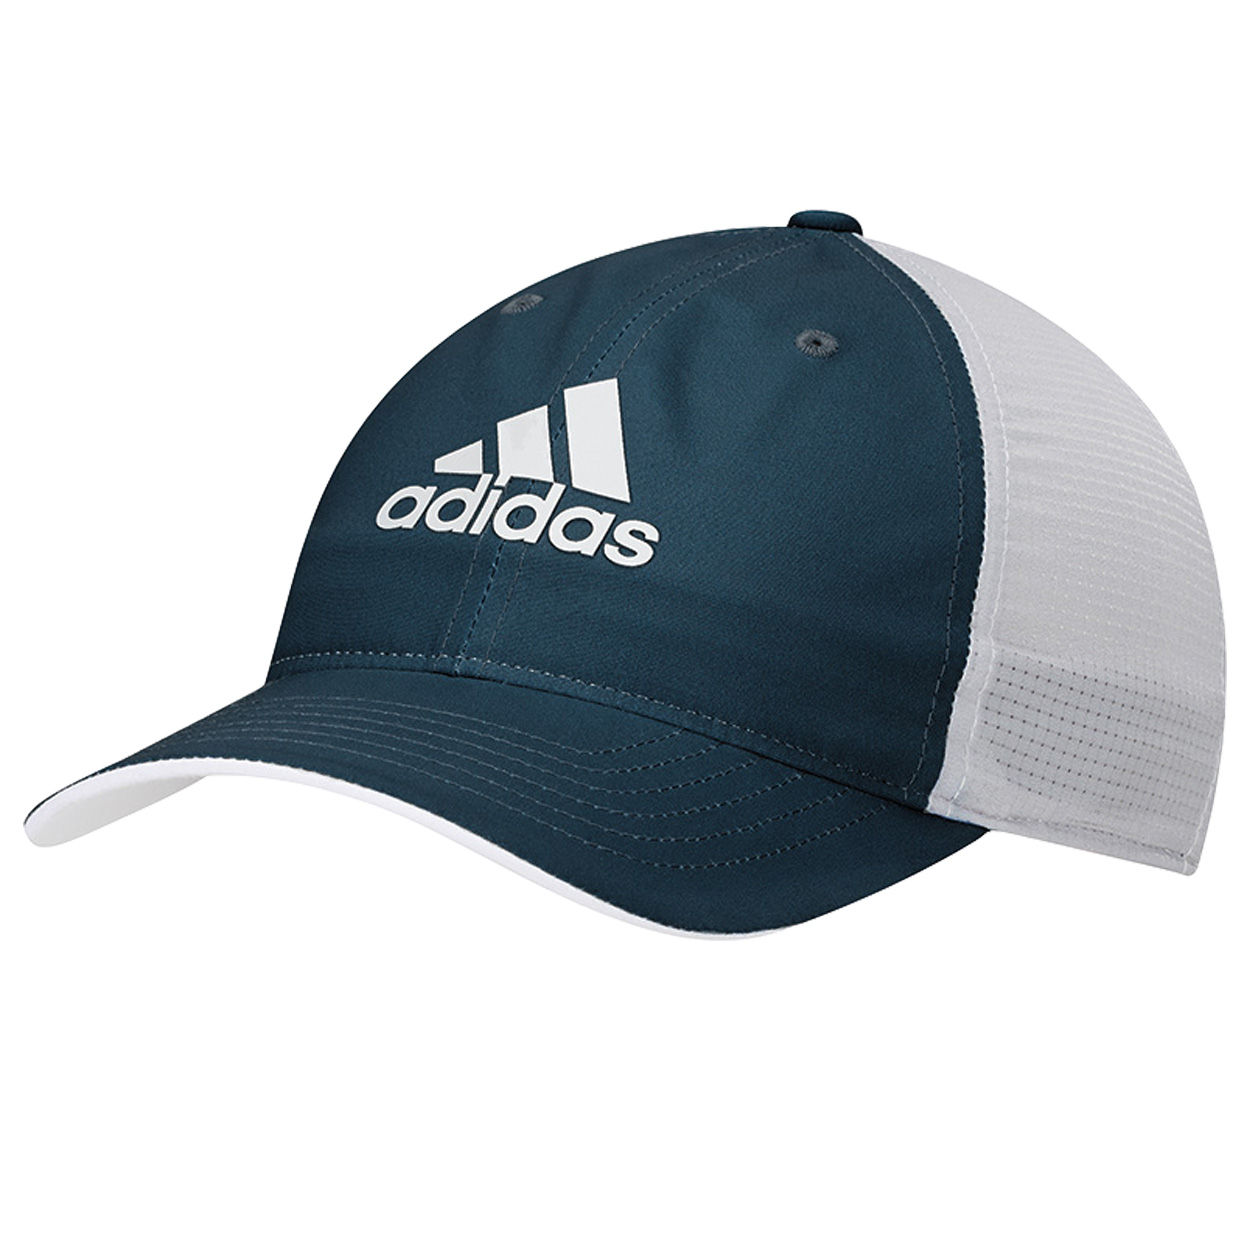 Adidas Climacool Flex Fit Golf Hat